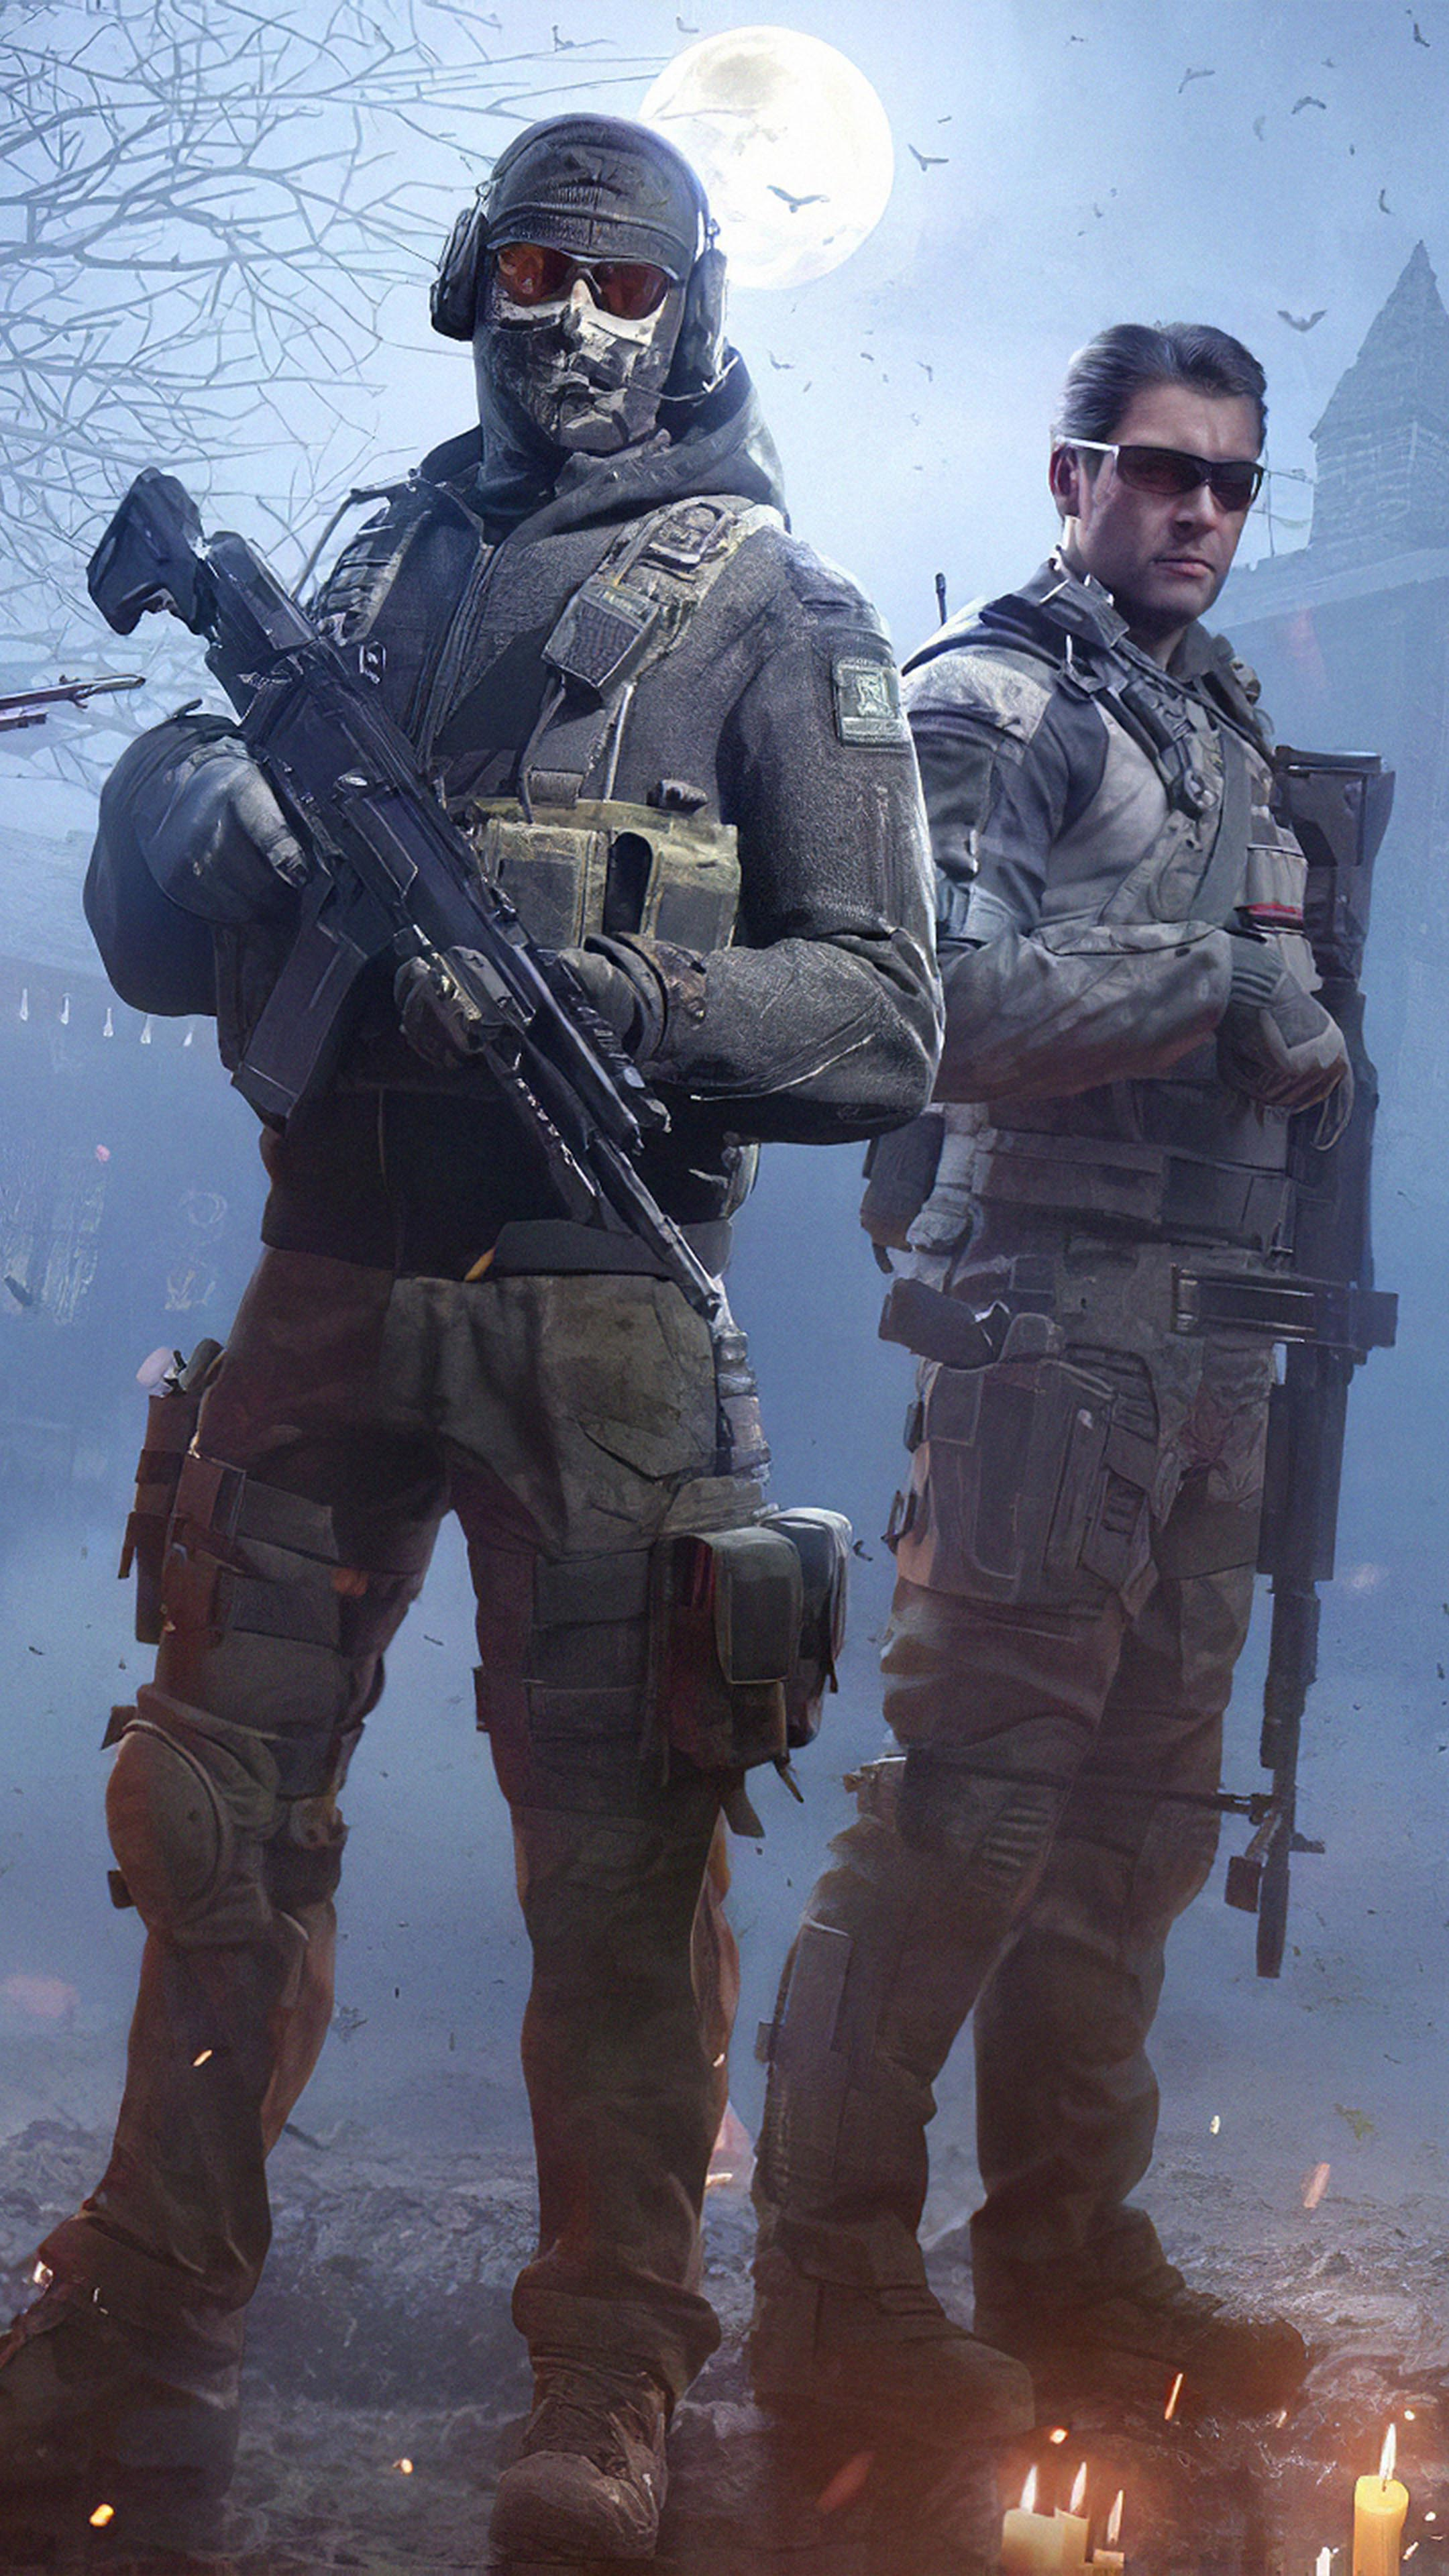 Squad Call Of Duty Mobile 4k Ultra Hd Mobile Wallpaper